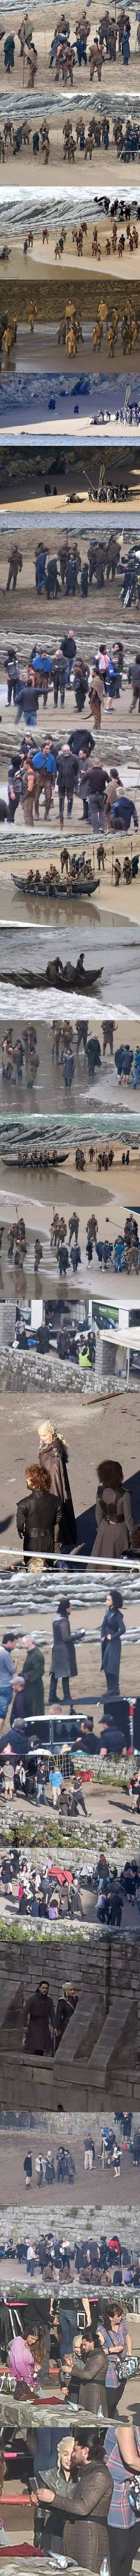 More Set Images From Game of Thrones Season 7 [Spoilers]